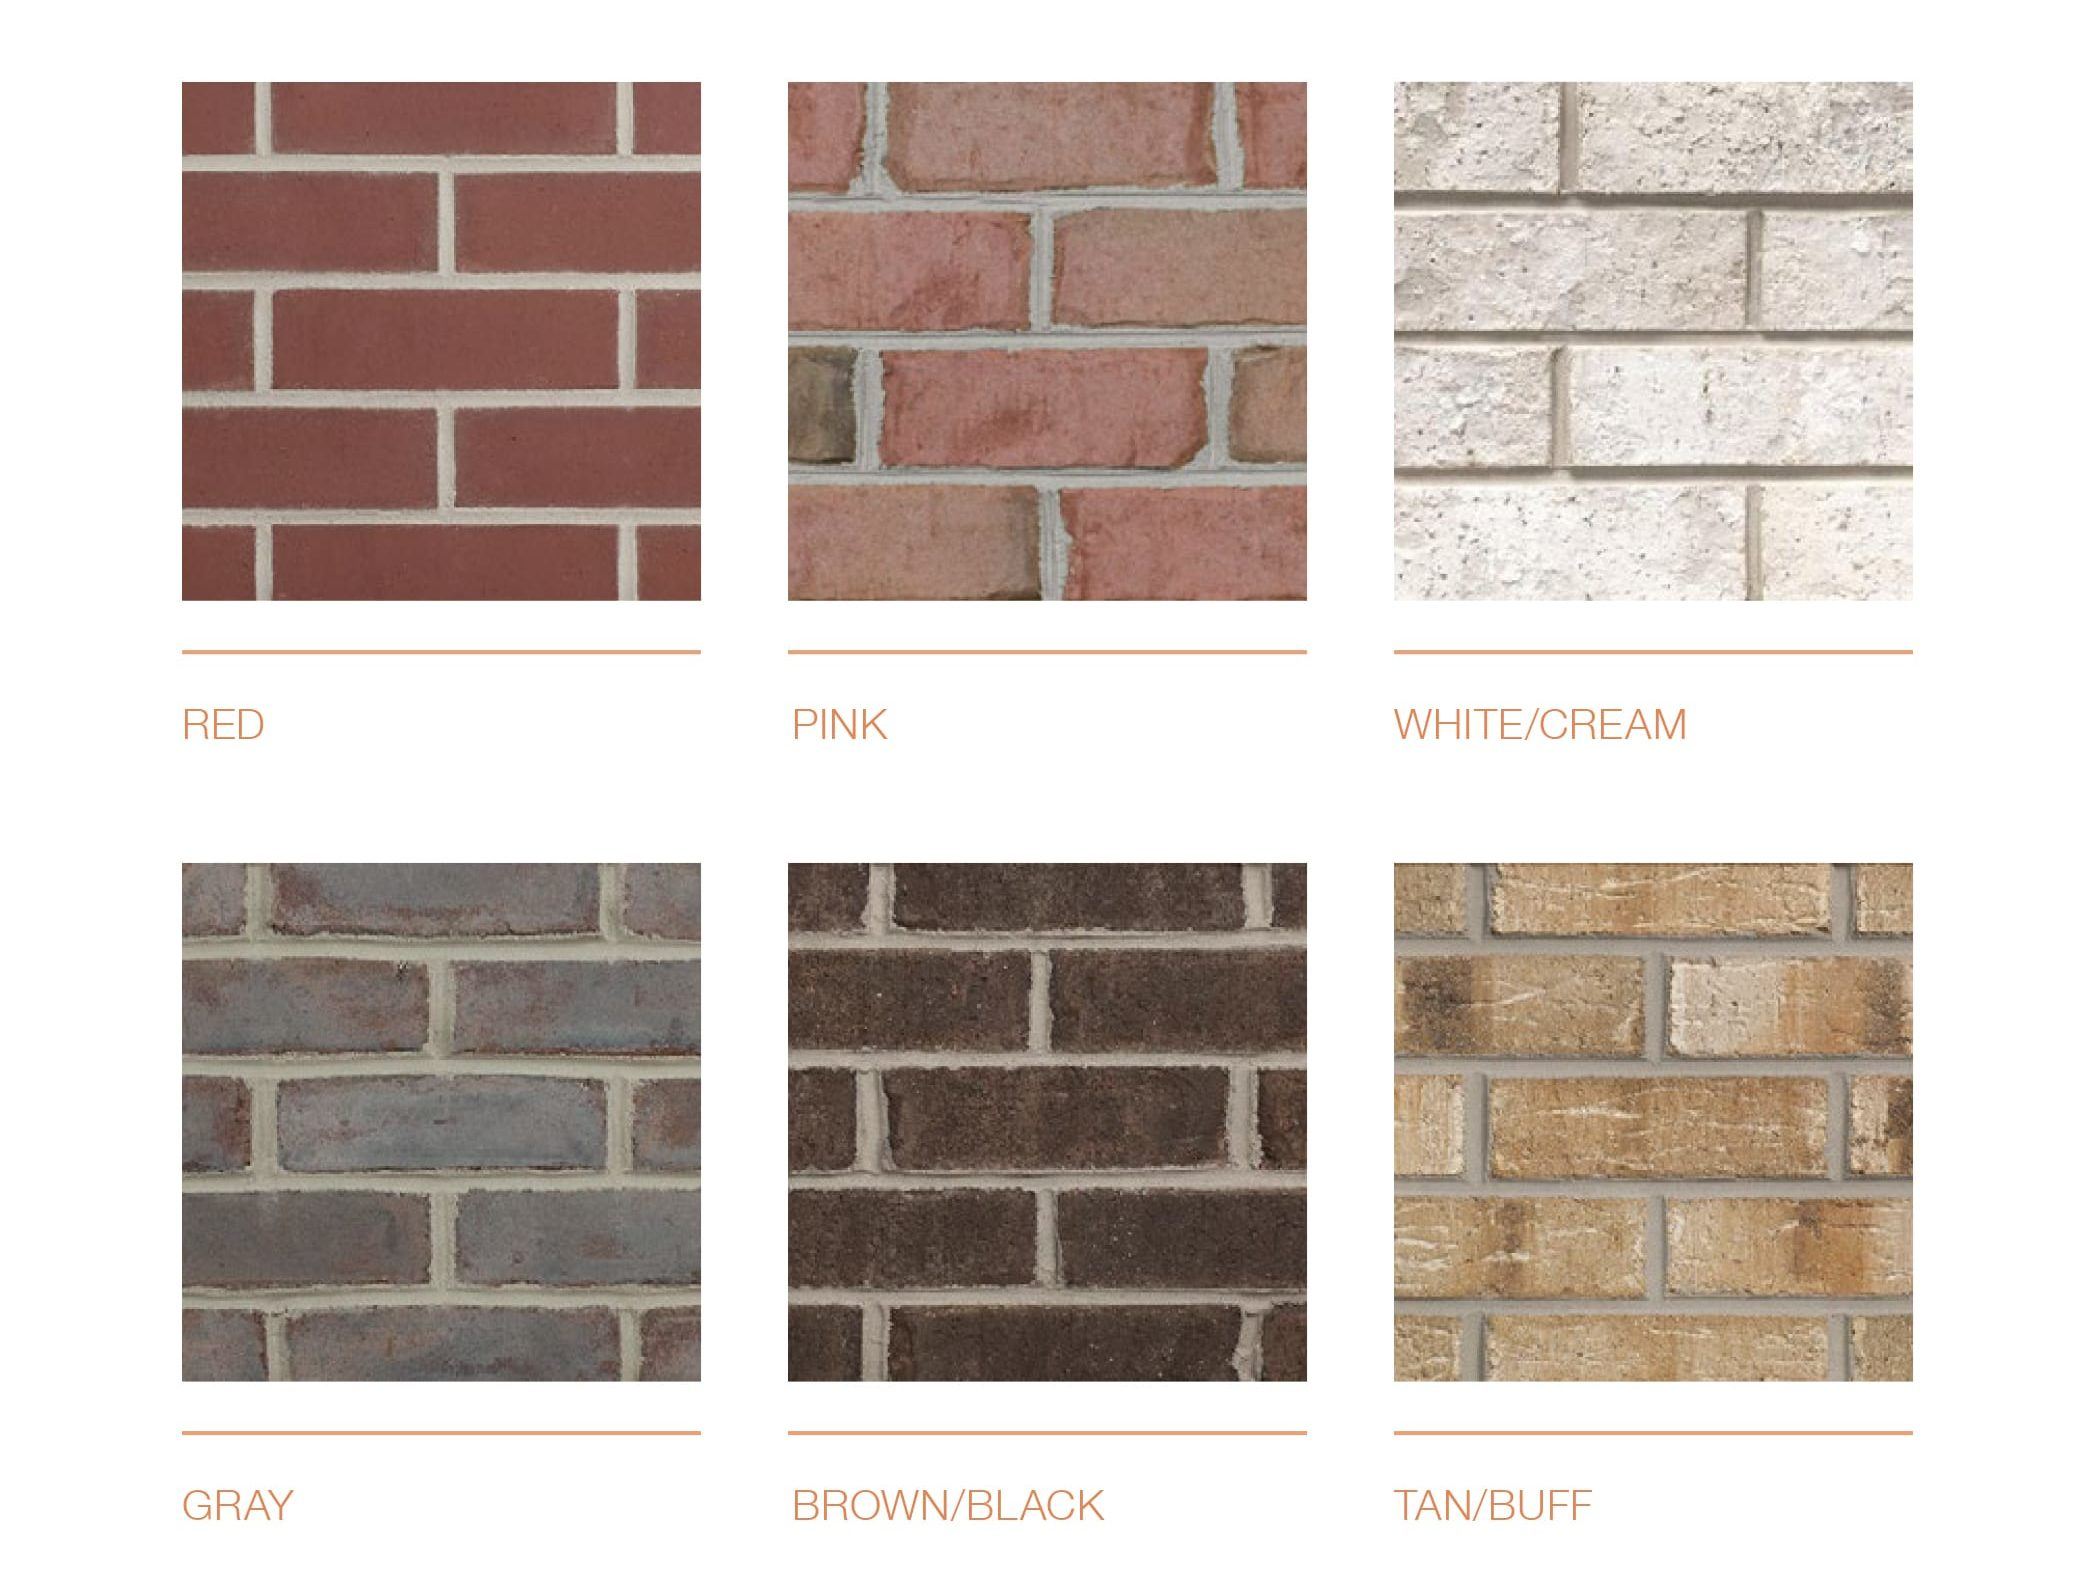 Brick Home Exterior Color Schemes Davinci Roofscapes,What A Beautiful Name Chords Guitar Tabs